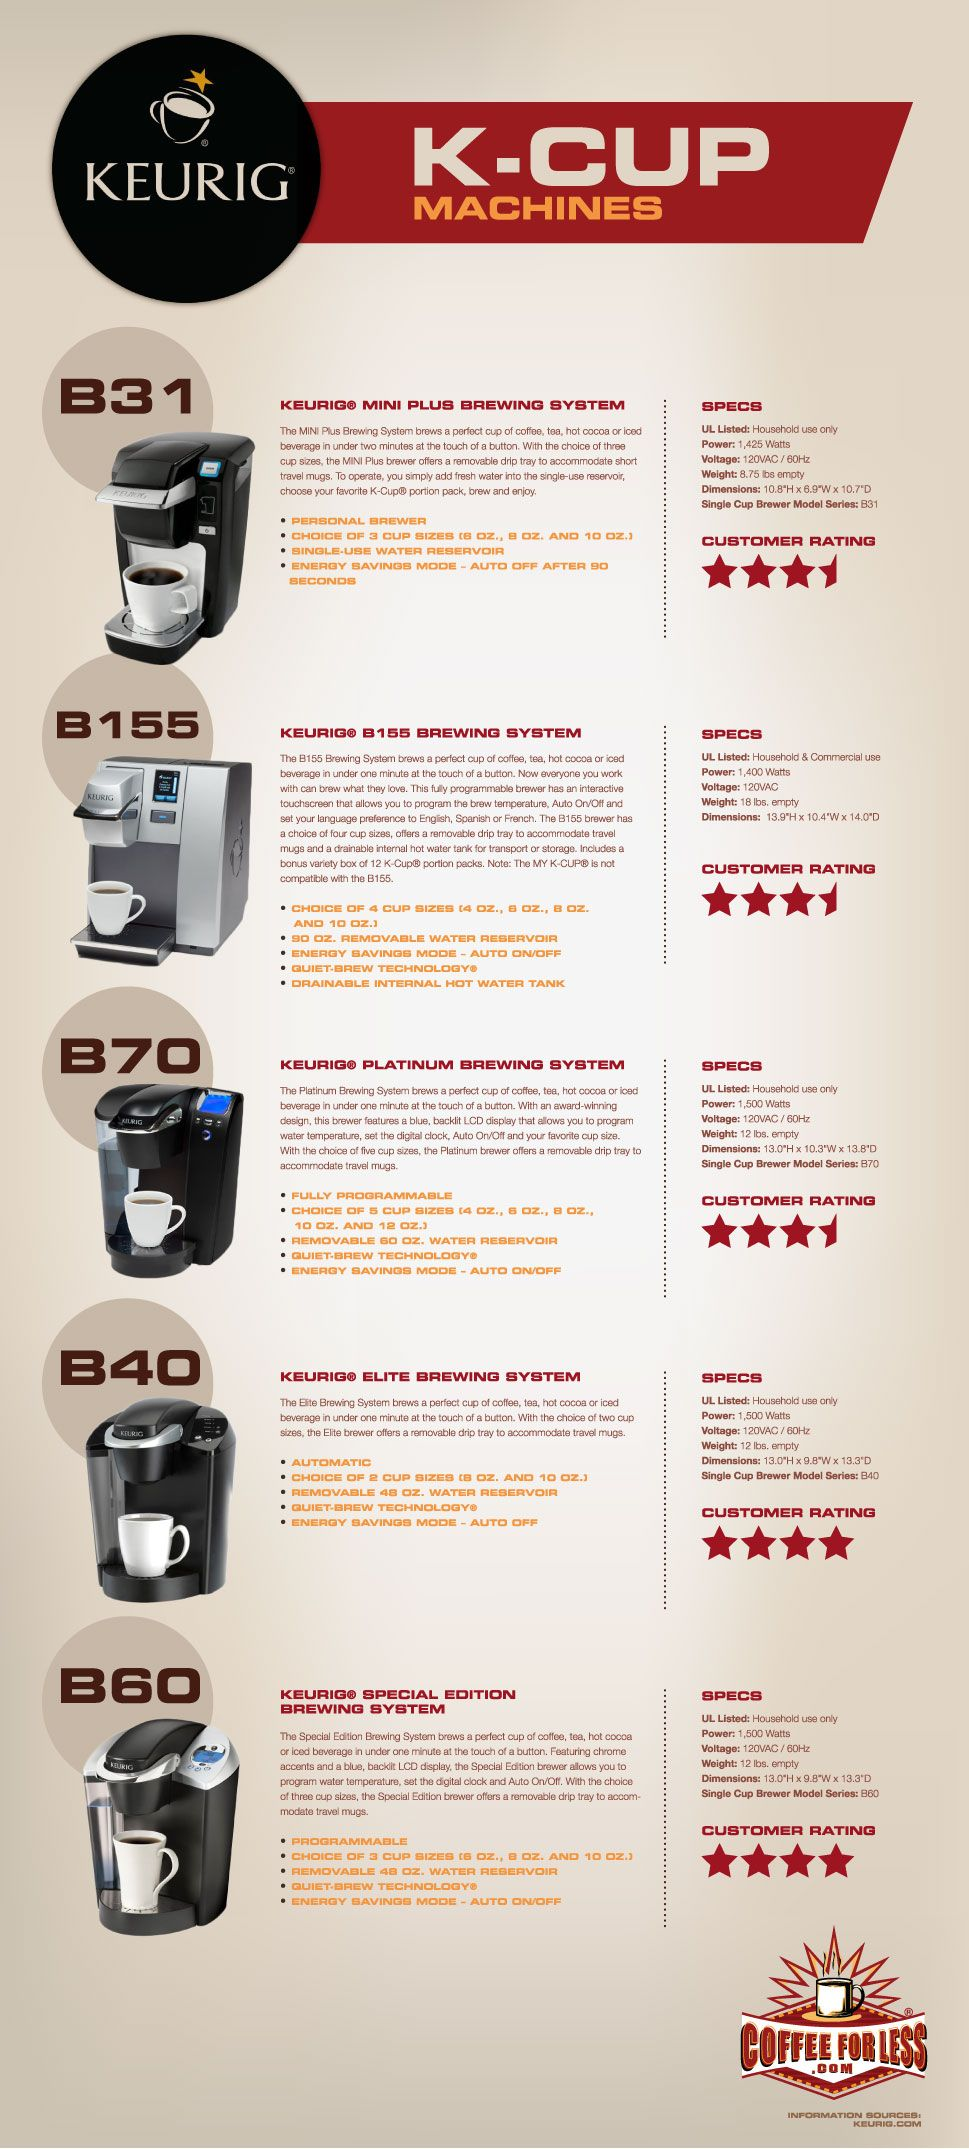 Keurig k cup machines comparison pinterest keurig cups and coffee